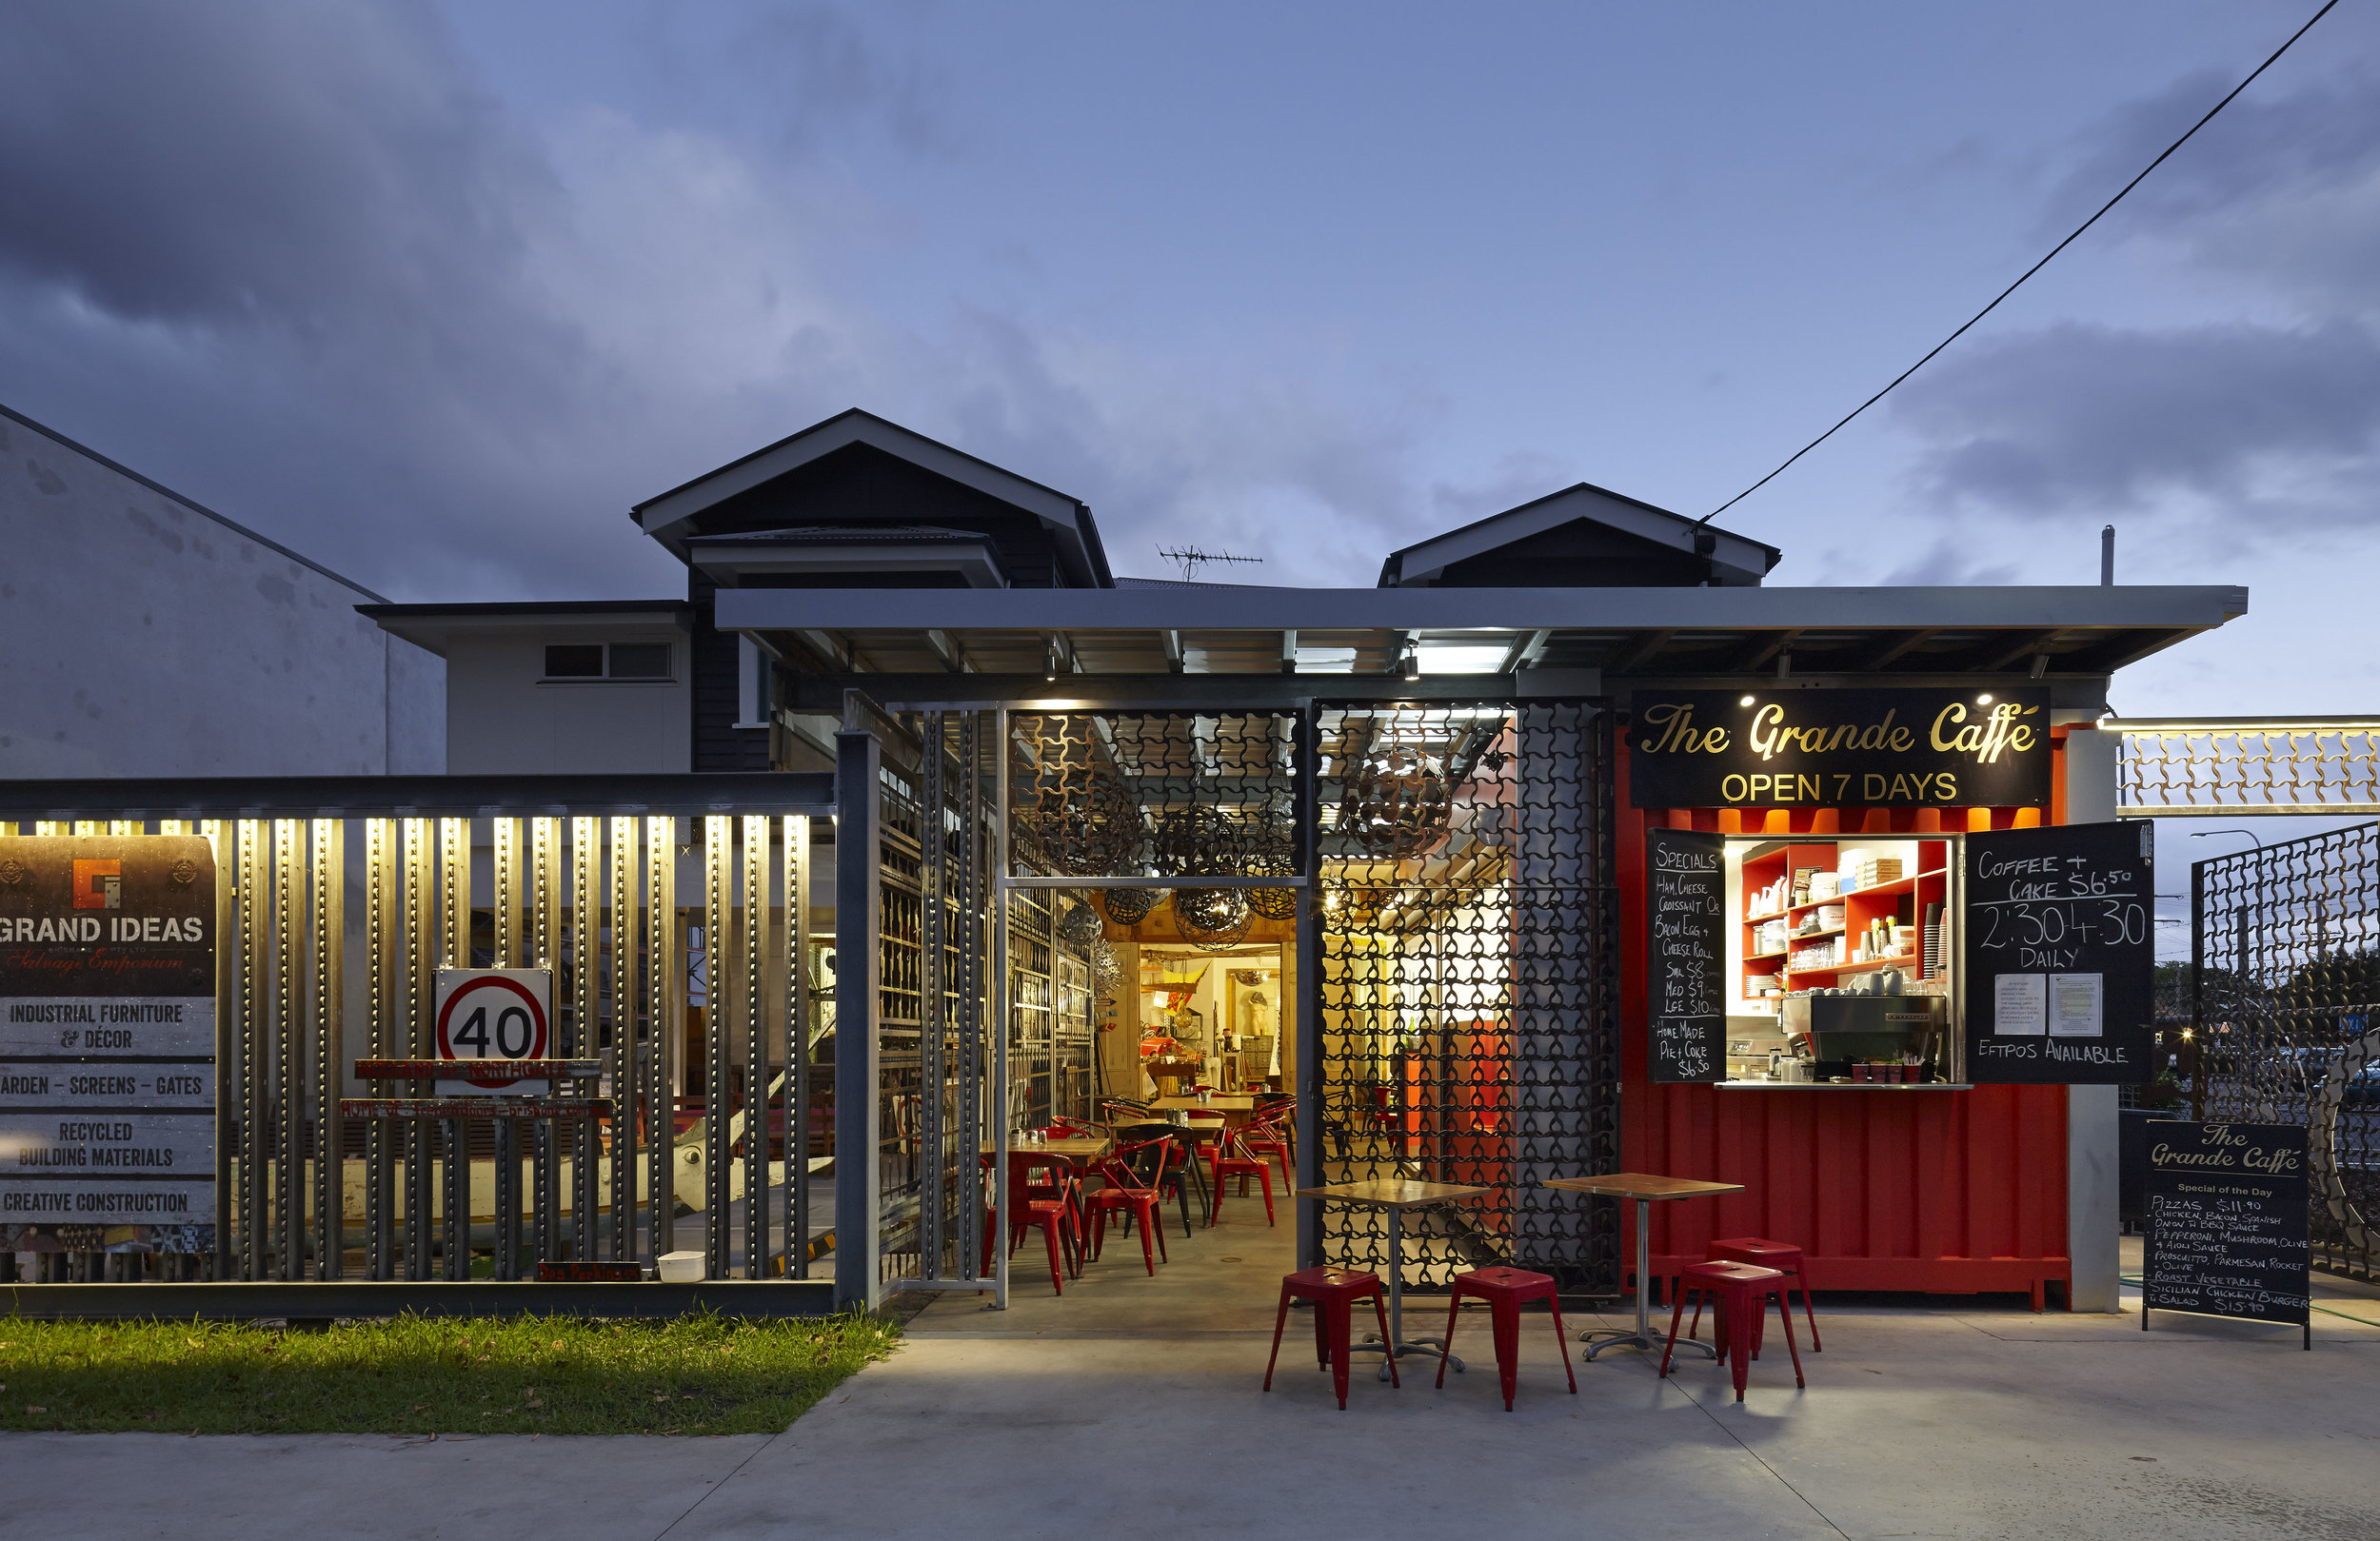 Guymer-bailey-architects-Grand-Ideas-cafe-commercial-01.jpg